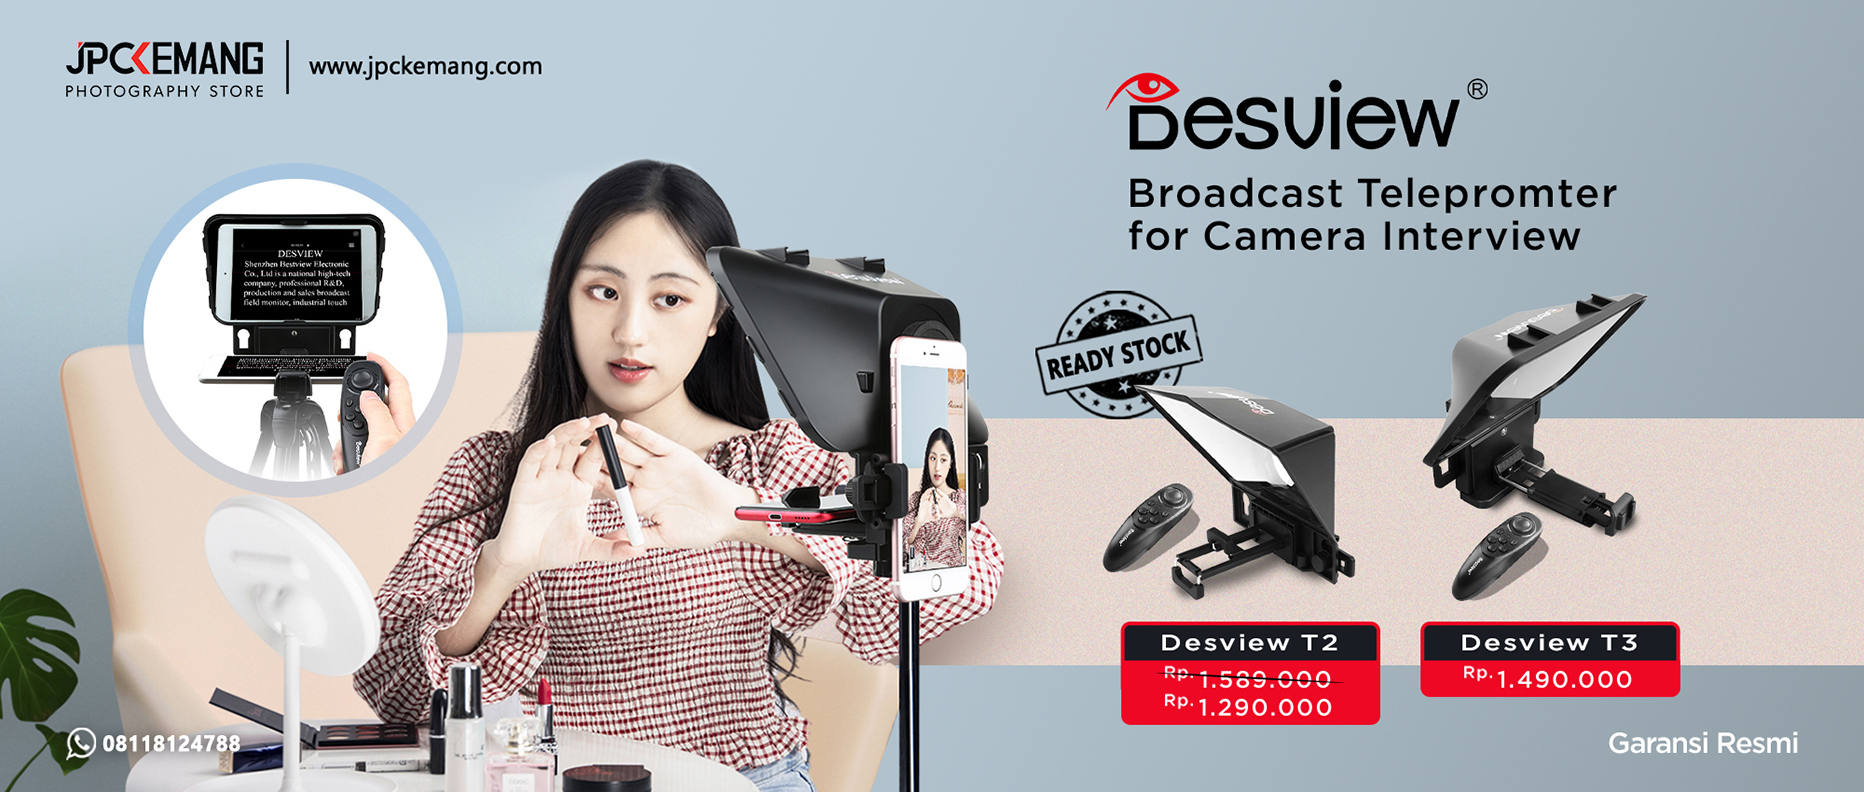 Desview T2 dan T3 Teleprompter for Camera Interview